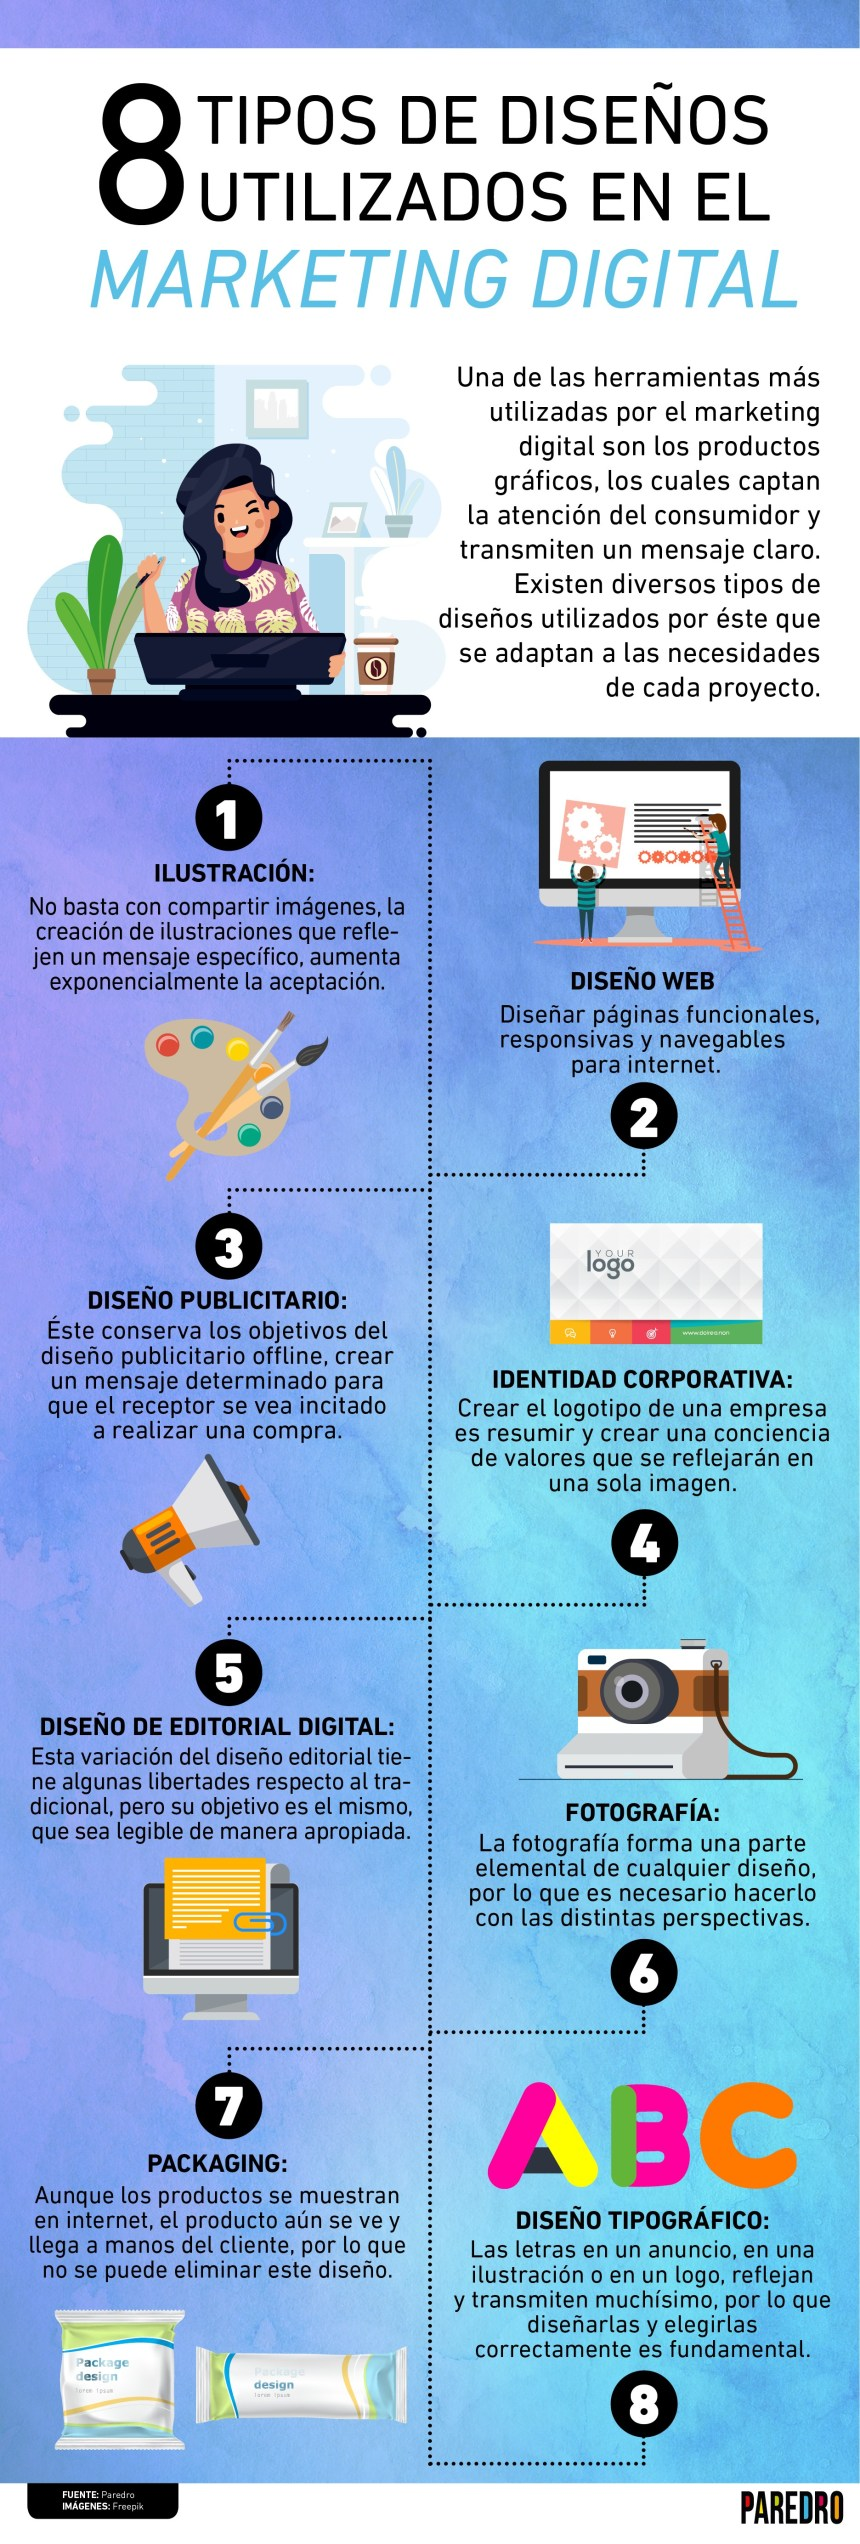 8 tipos de diseños utilizados en Marketing Digital #infografia #design #marketing